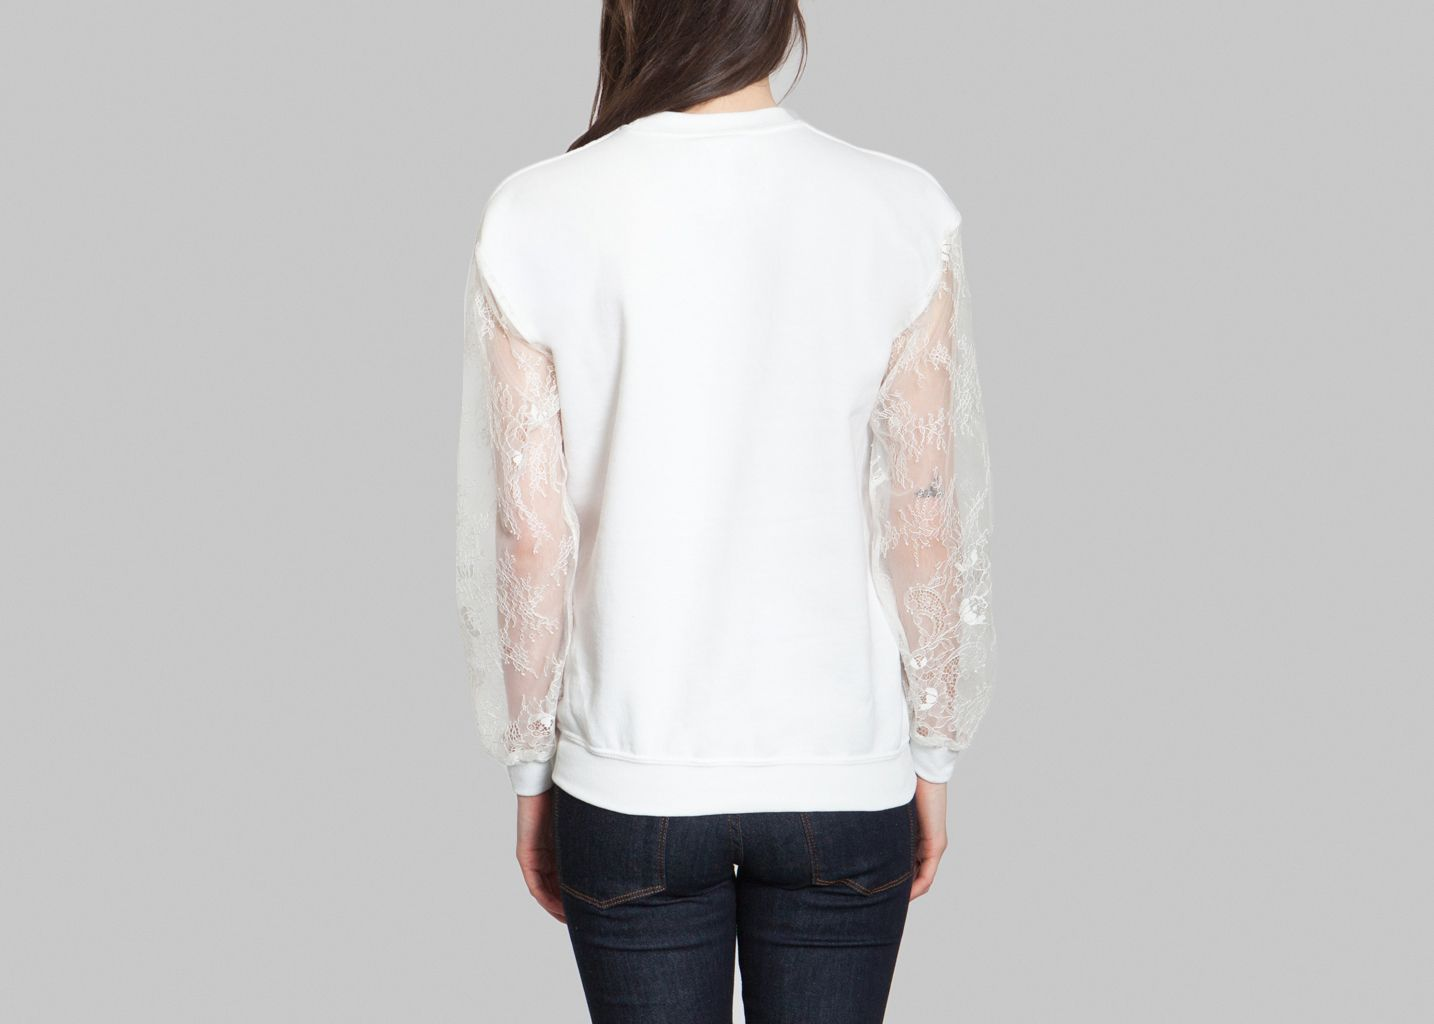 Sweat L'Exception Mabille - Alexis Mabille